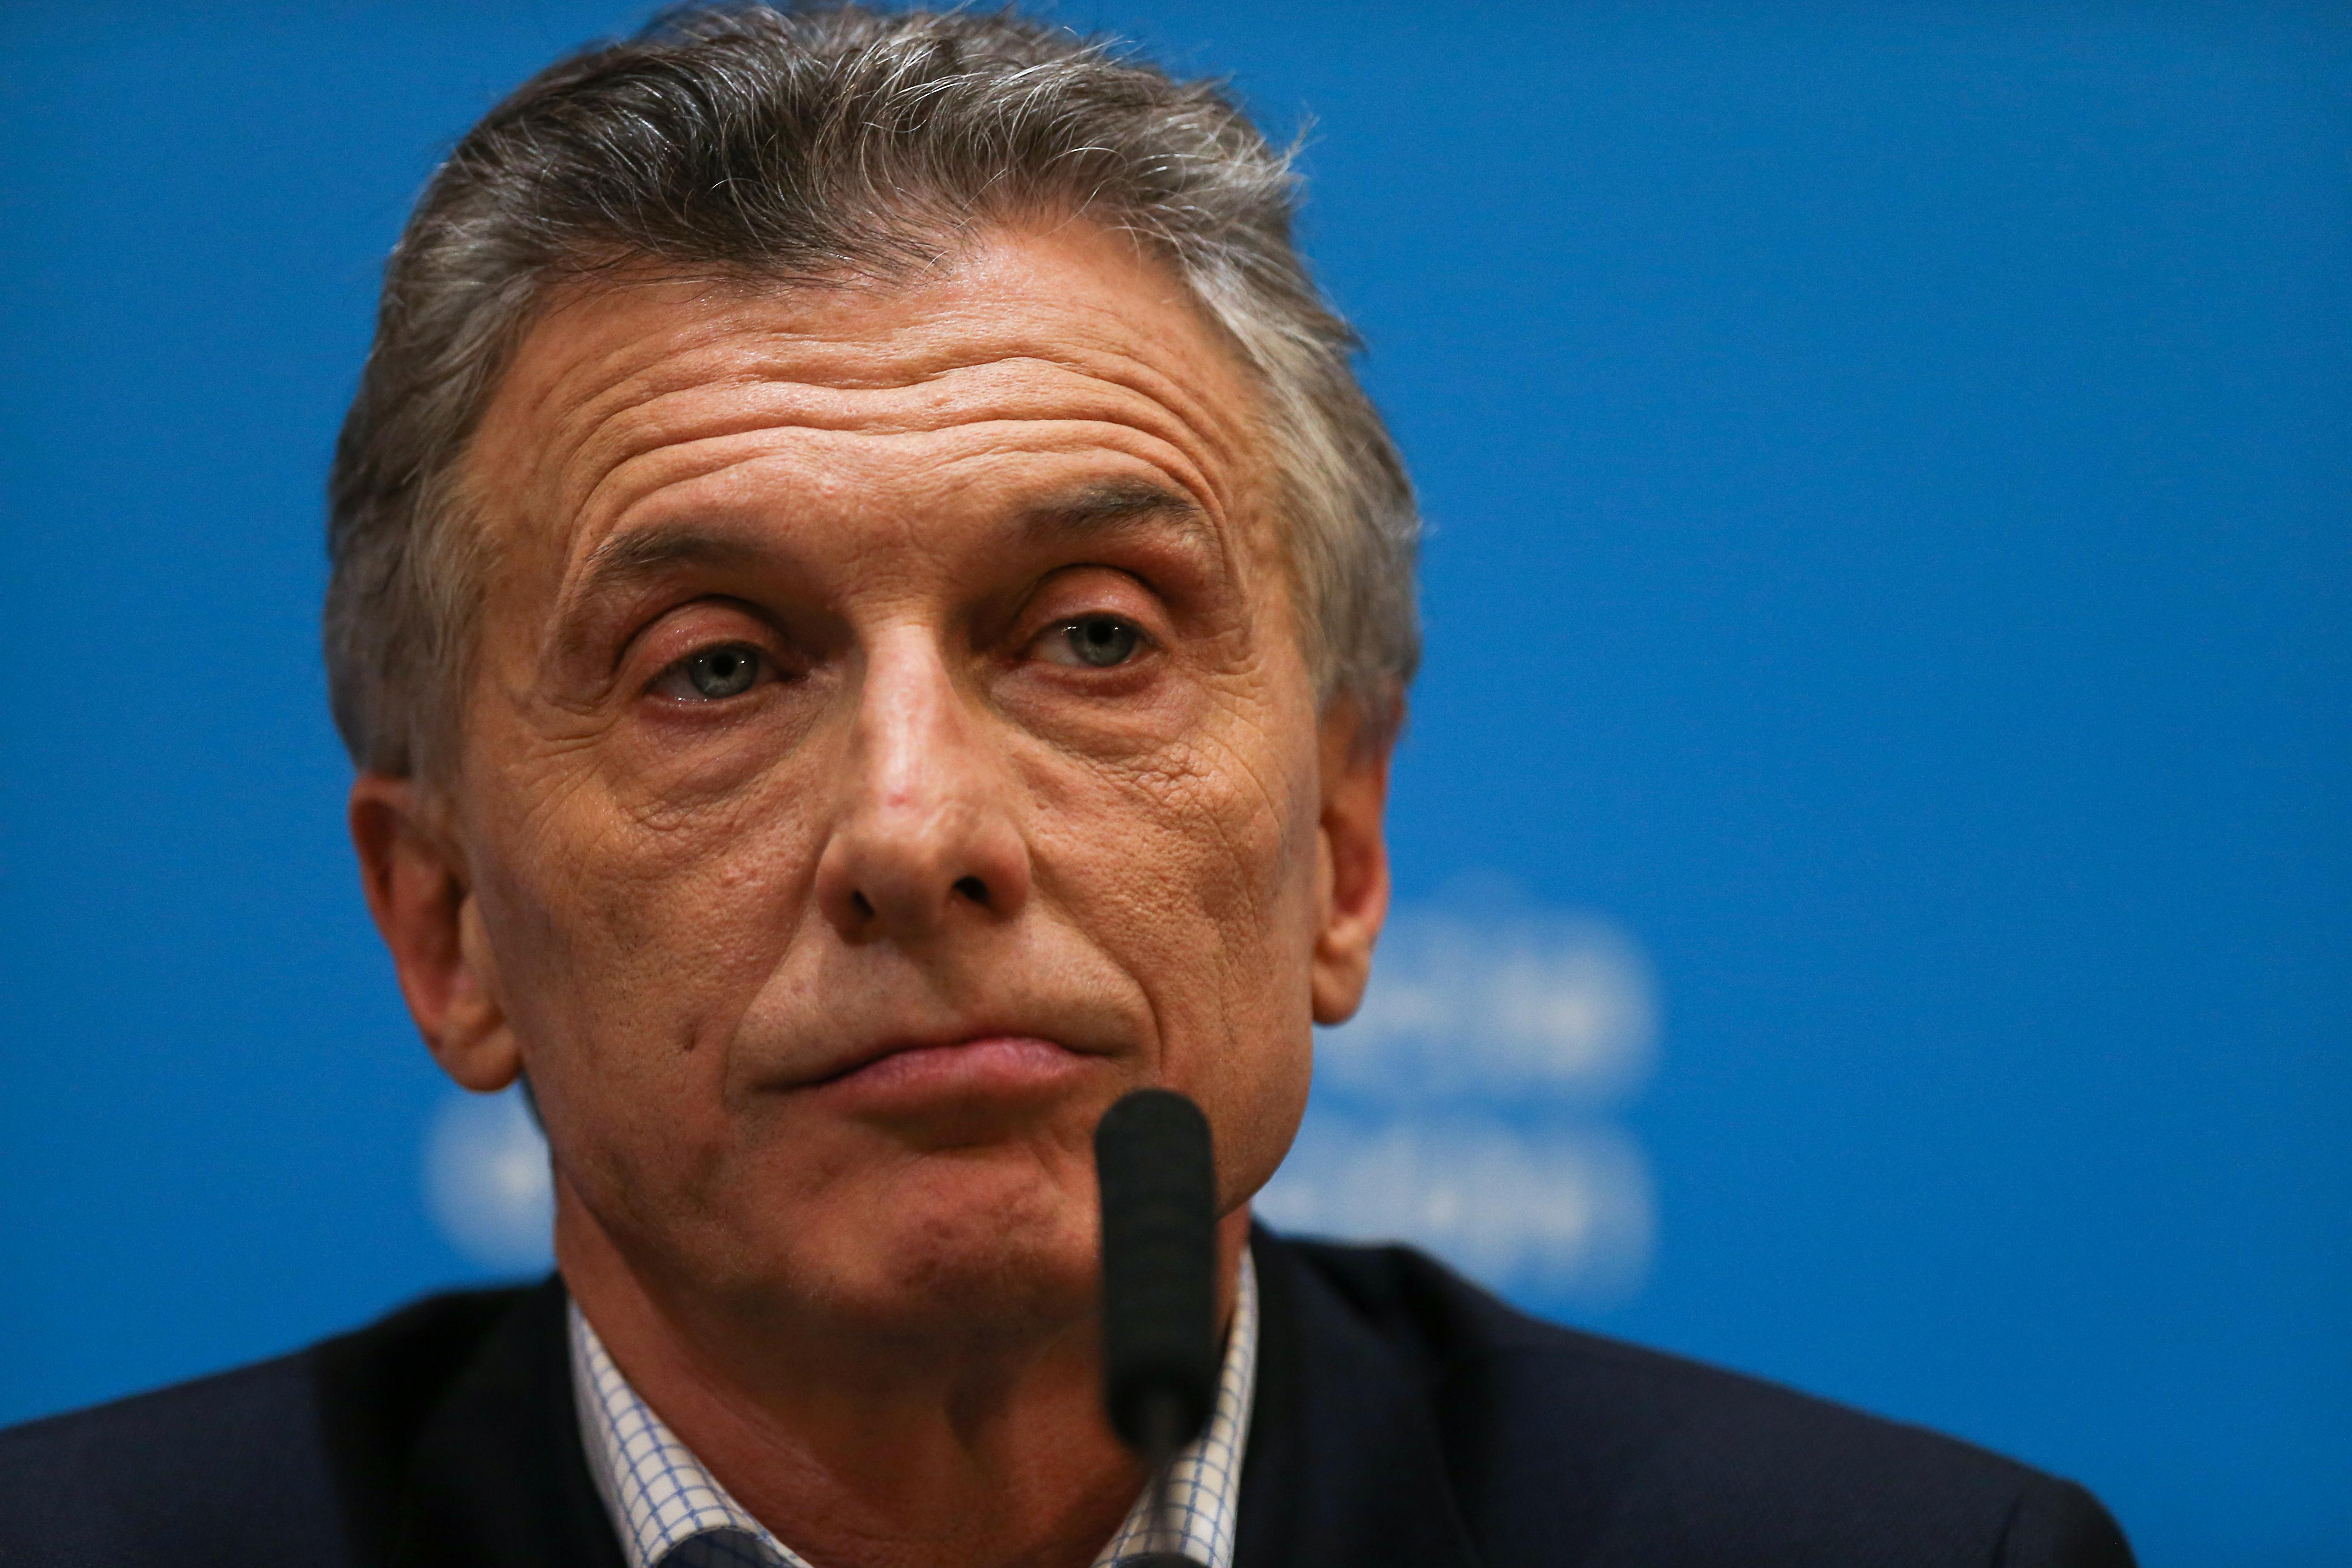 WRAPUP 5-Argentine markets gripped for second day by election-related fears